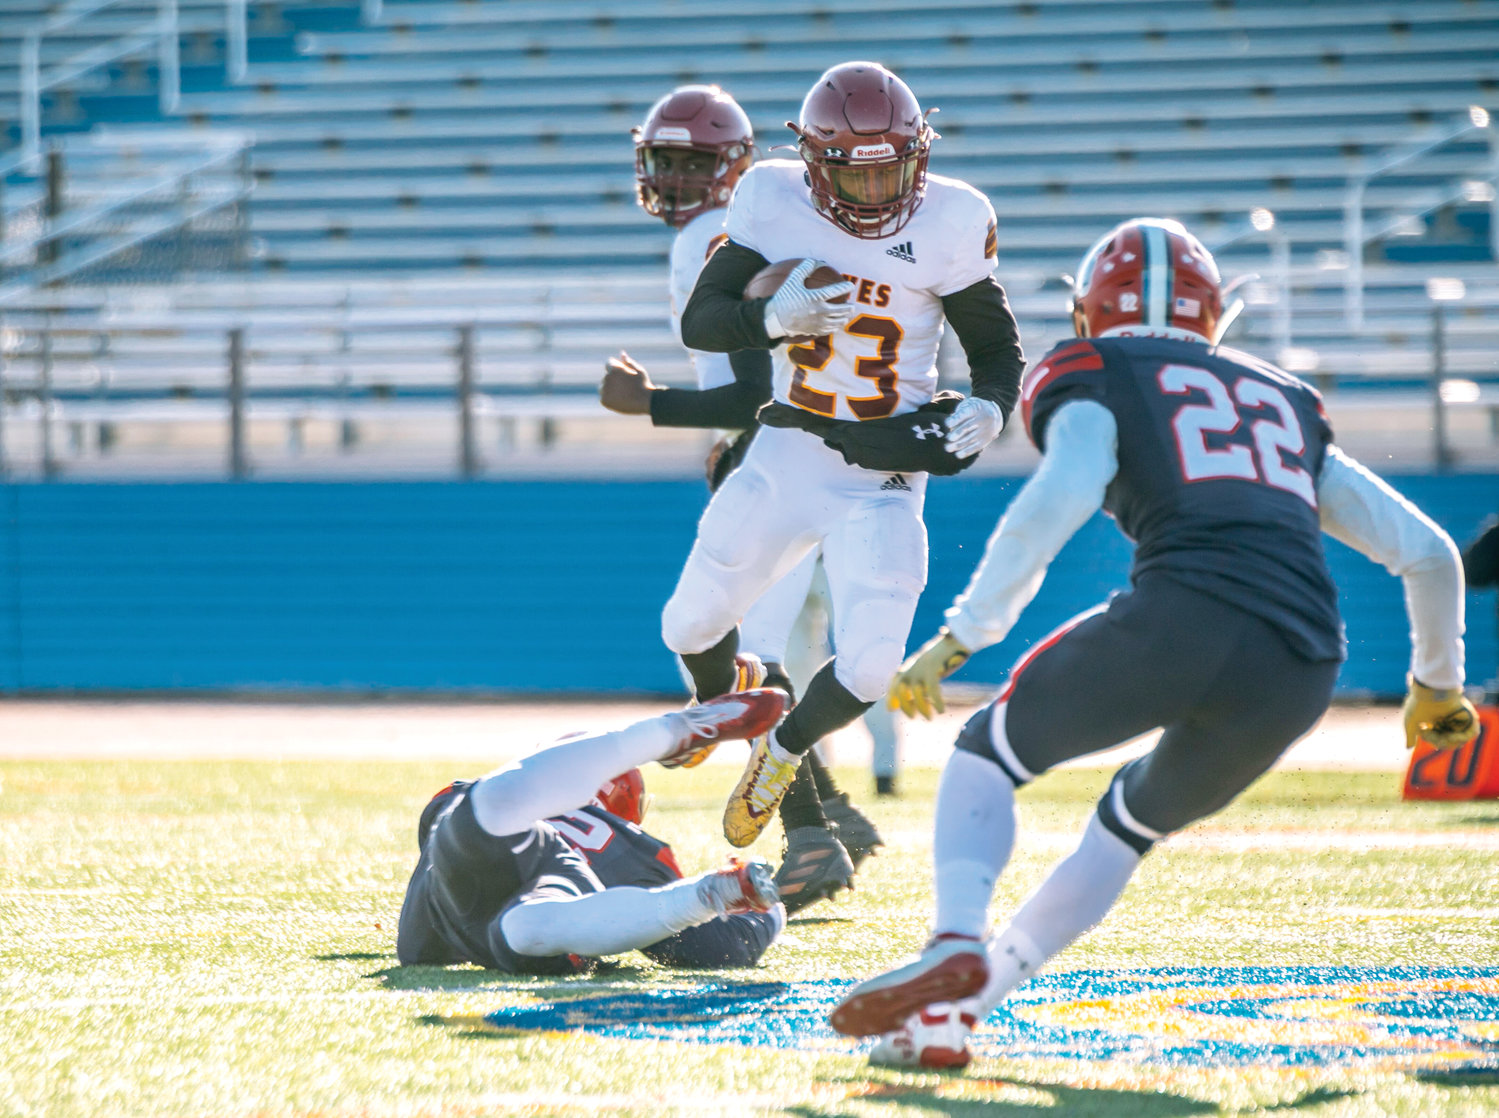 ON THE MOVE—Cardinal Hayes senior Jalen Smith carries the football during his team's 25-7 Catholic High School Football League AAA championship victory over Archbishop Stepinac at Mitchel Field in Uniondale last November.